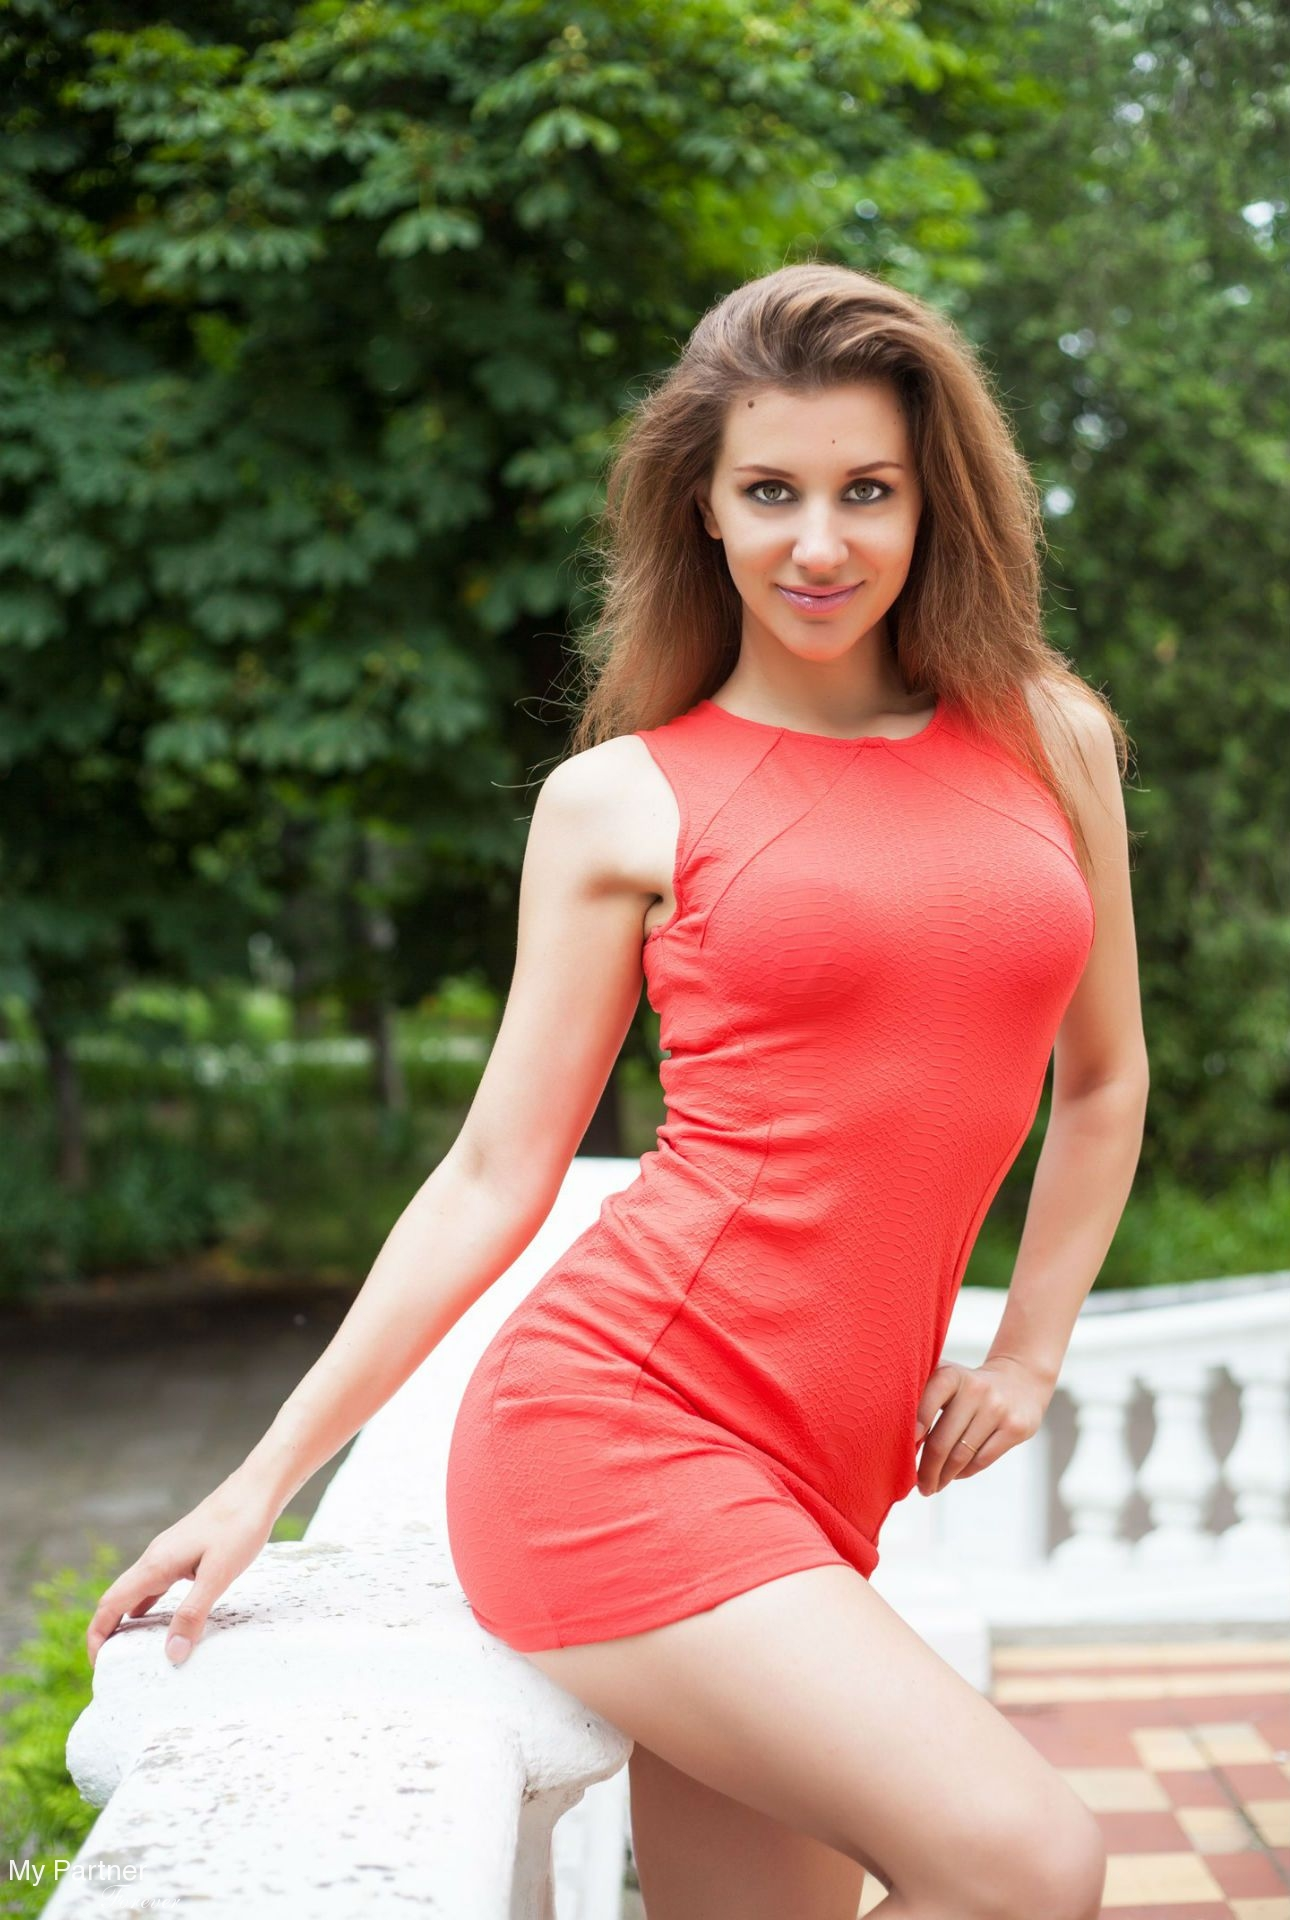 The 9 Best Ukrainian Dating Sites